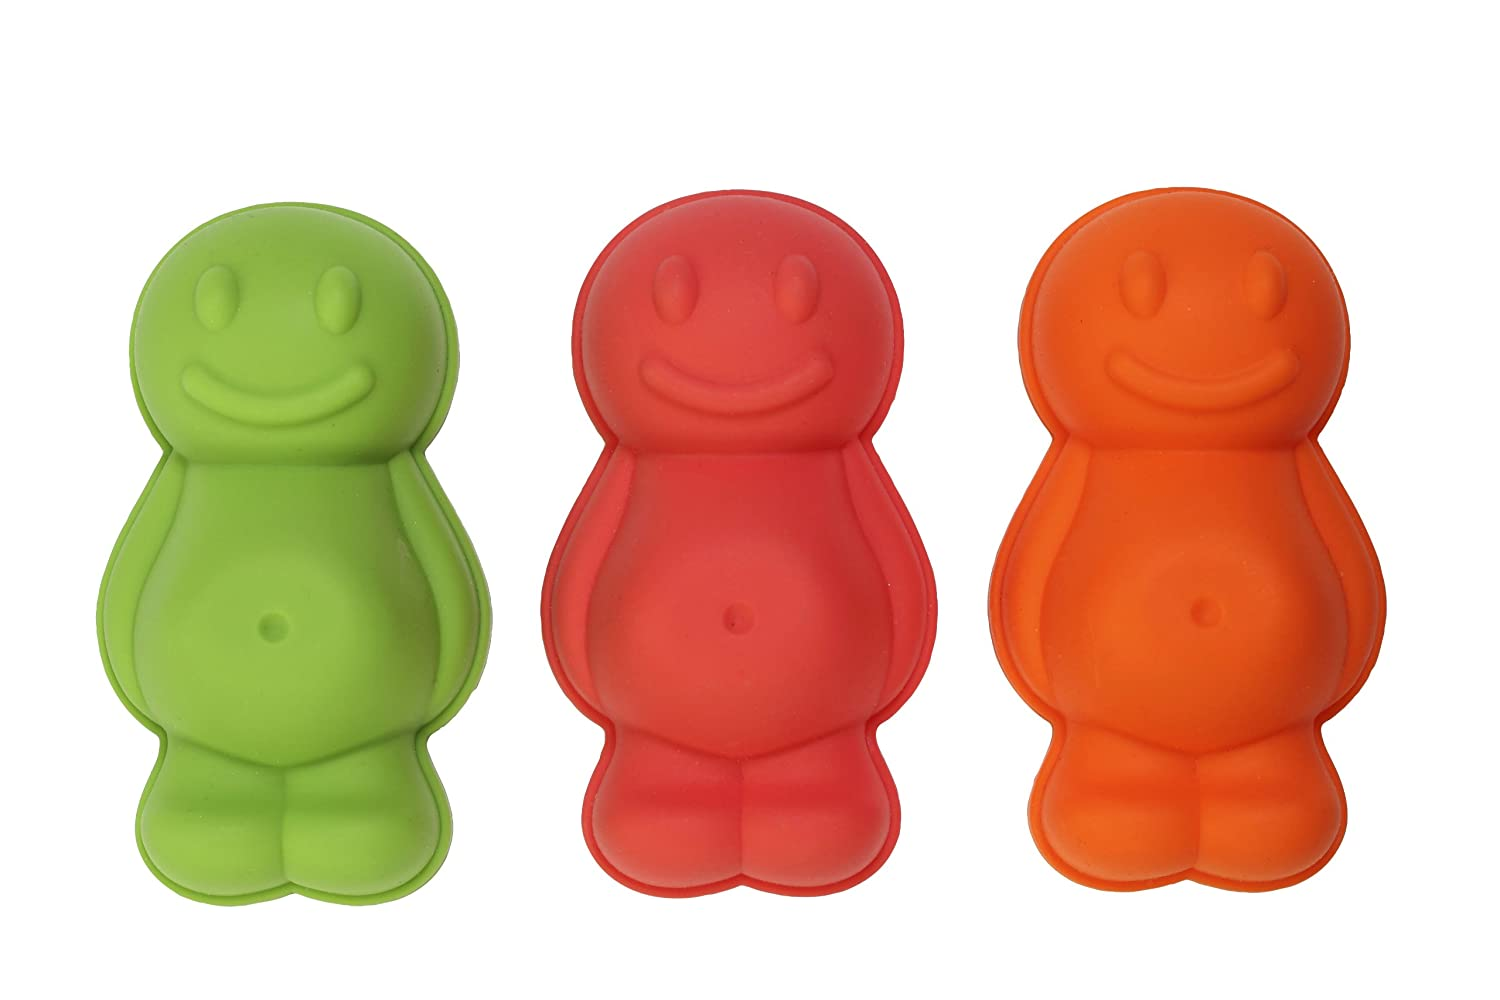 Dexam Silicone Jelly Baby Moulds, Set of 3, Red/Orange/ Green 17841449